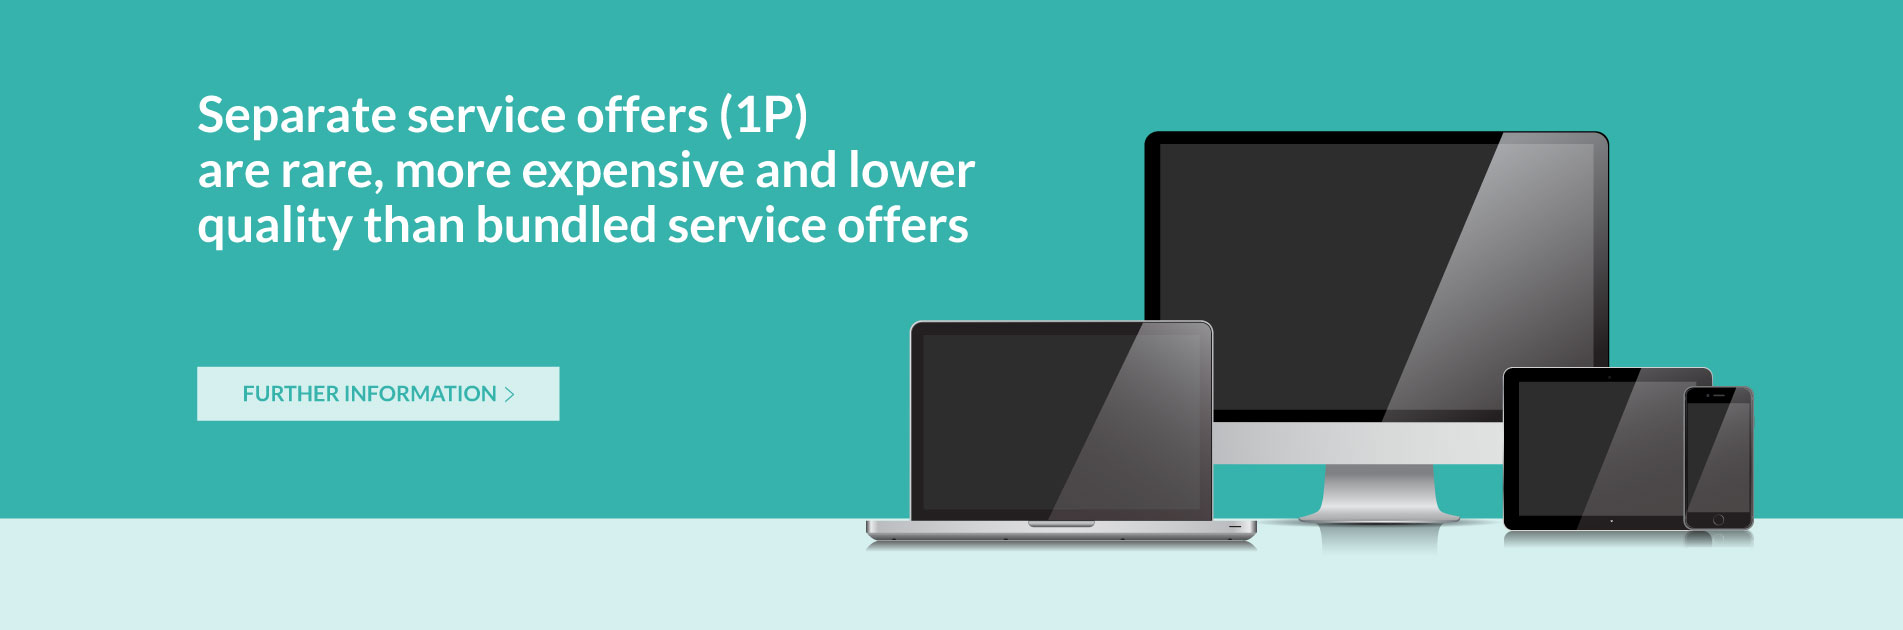 Separate service offers (1P) are rare, more expensive and lower quality than bundled service offers